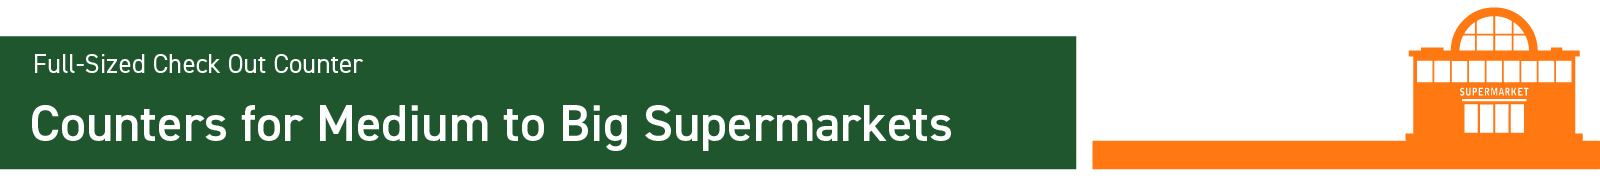 COUNTERS FOR BIG SUPERMARKETS